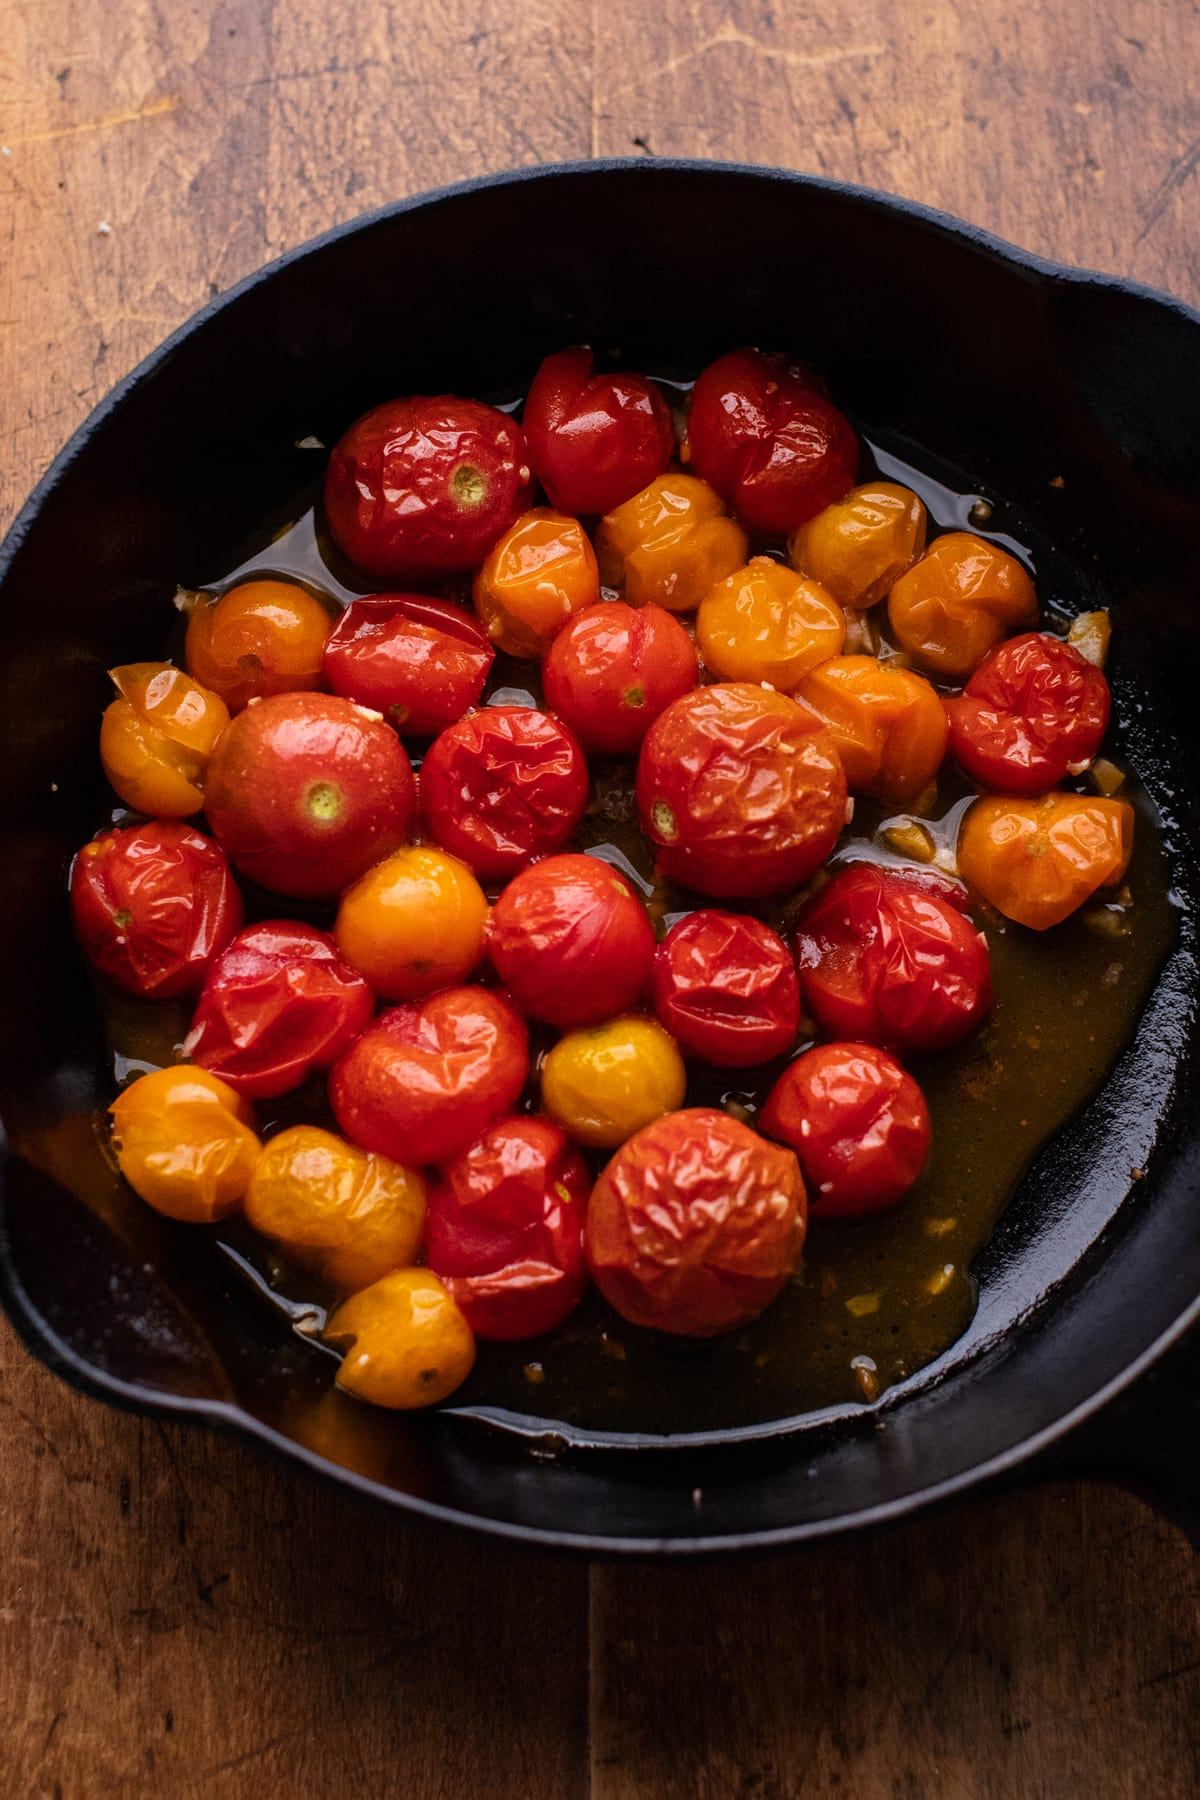 roasted cherry tomatoes in a black cast iron skillet on a wooden background.